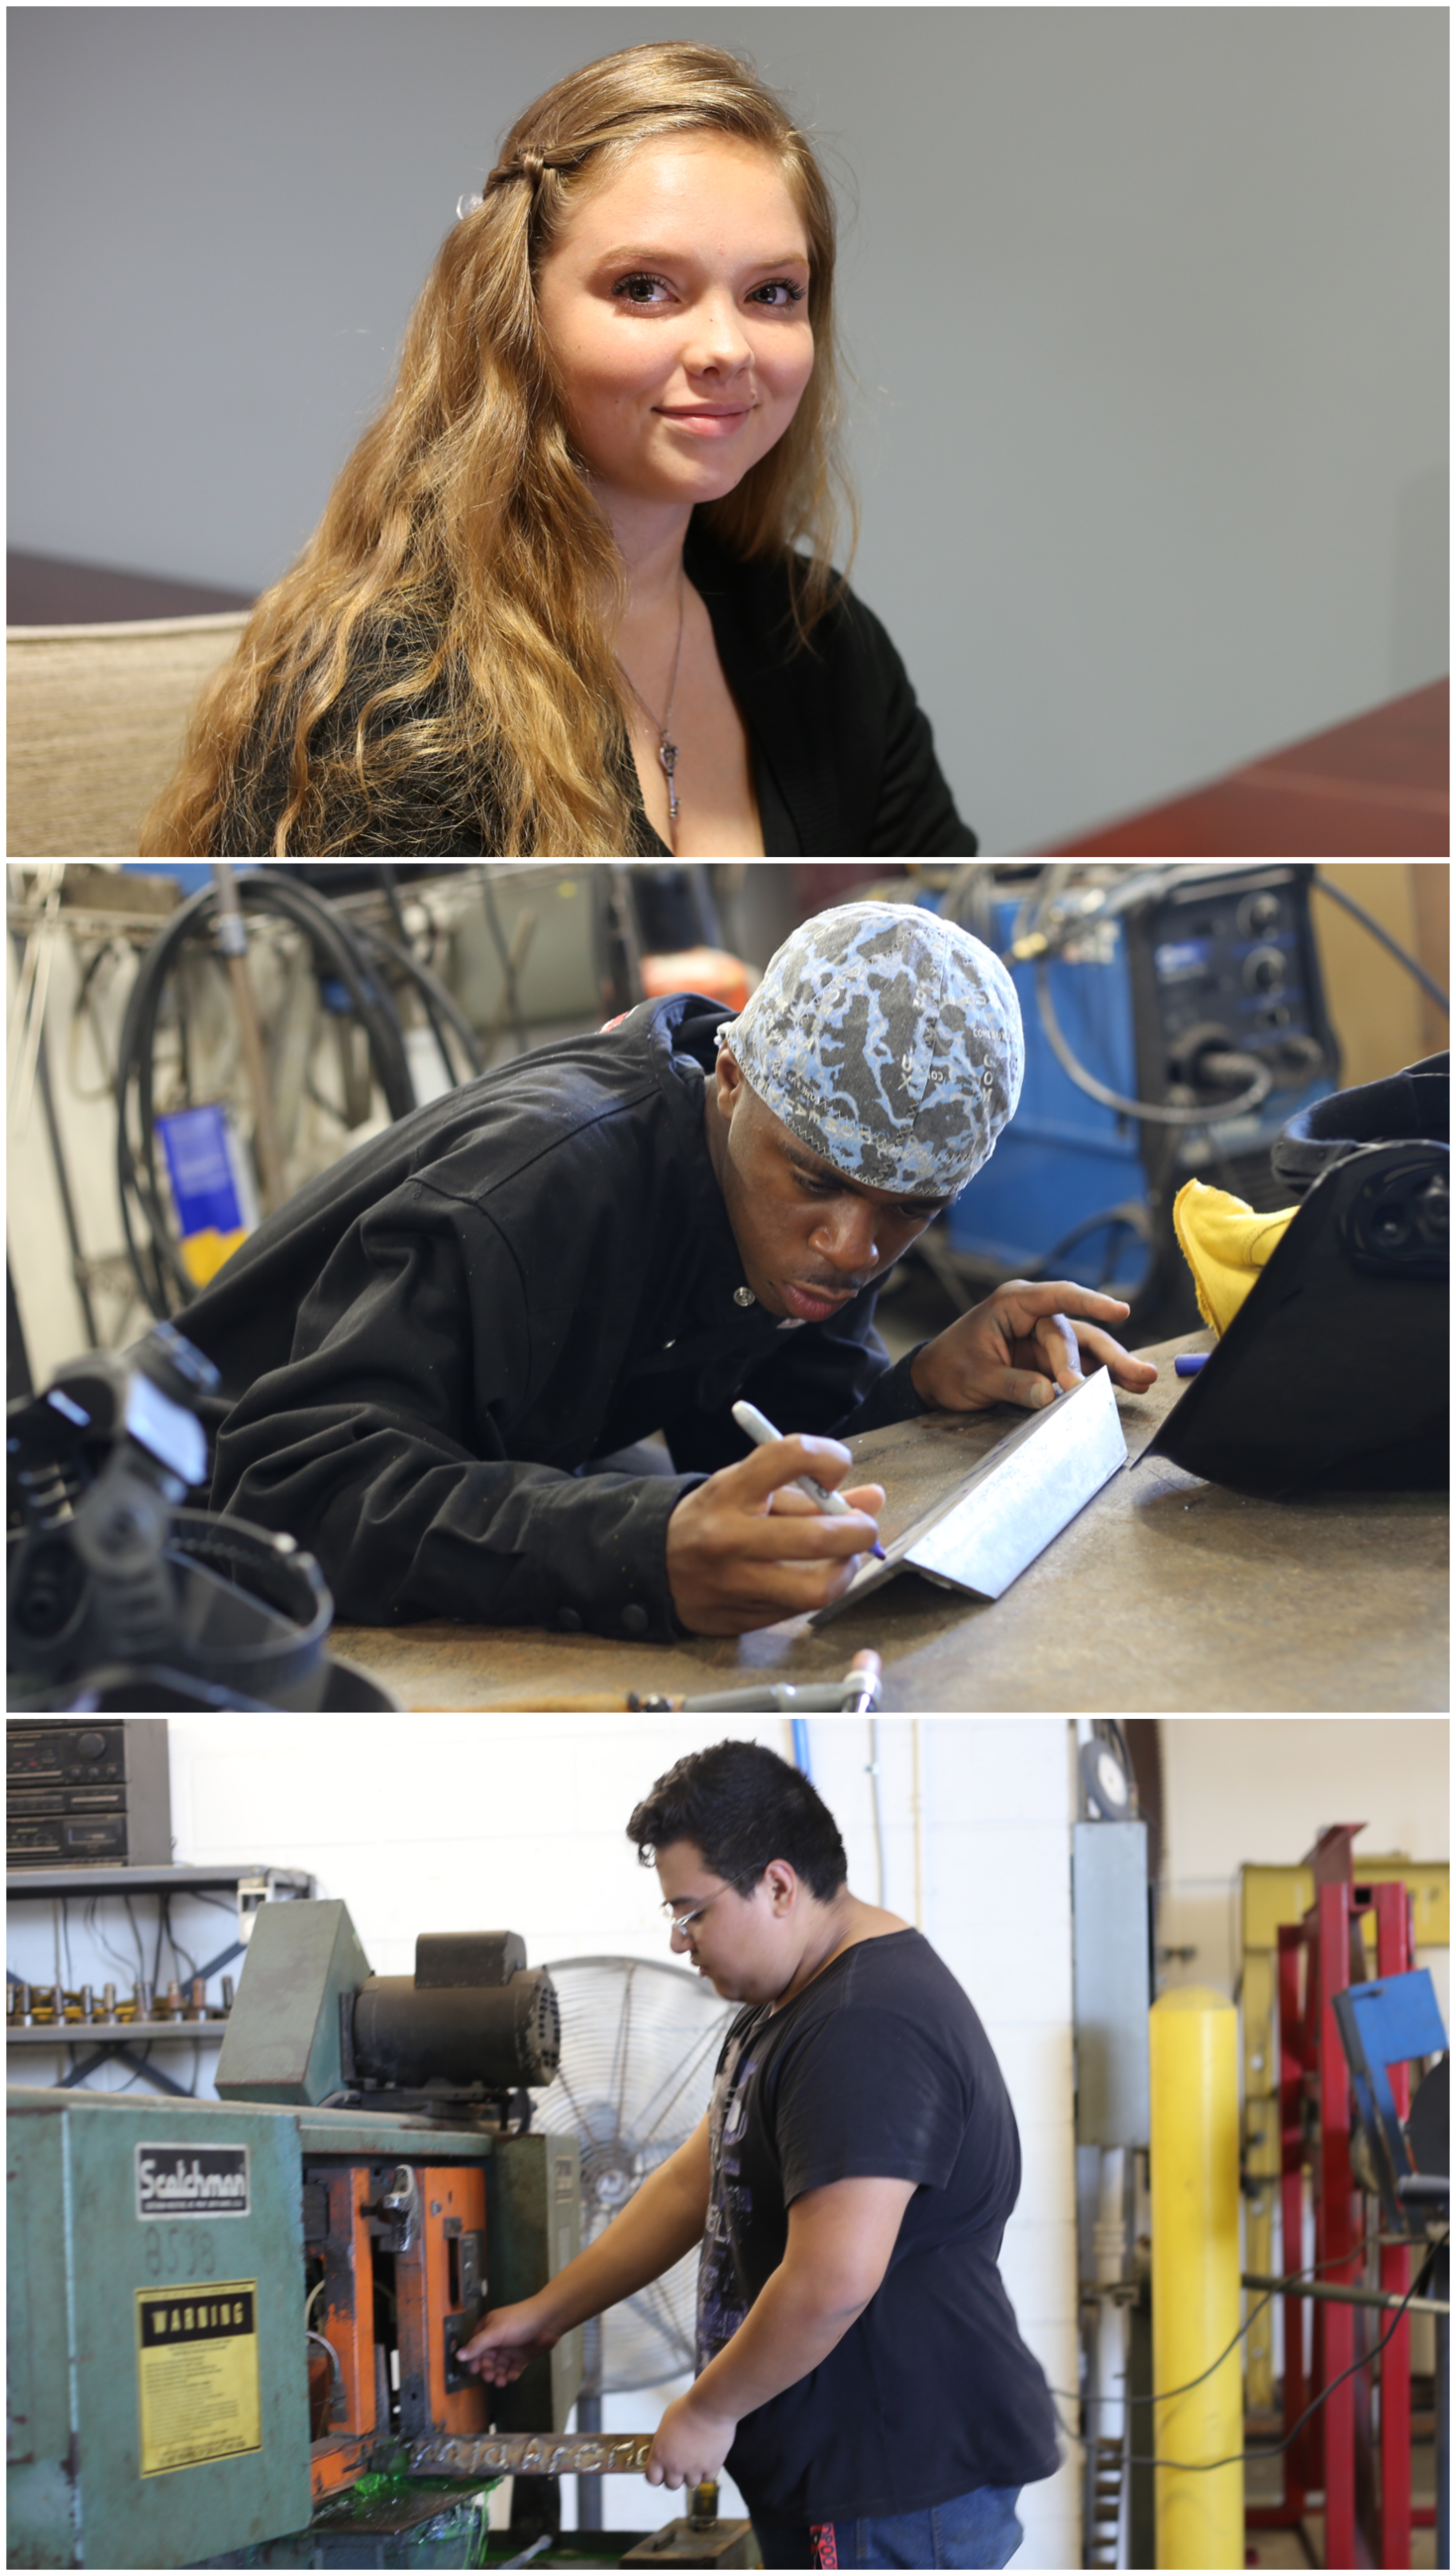 Cocoa Works collage with female student at desk, male student working with metal works, and another